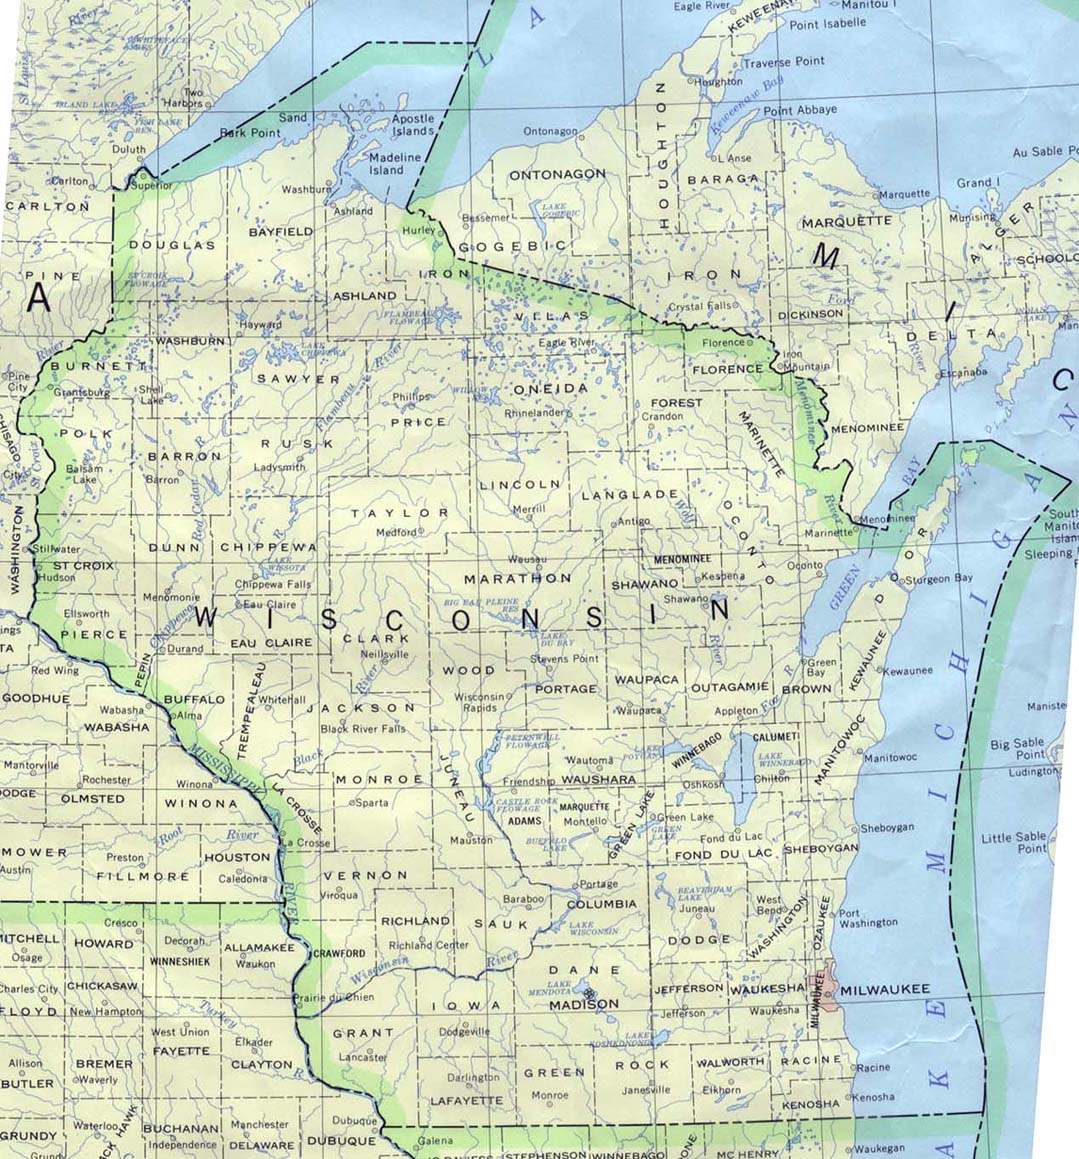 Wisconsin 90 large map